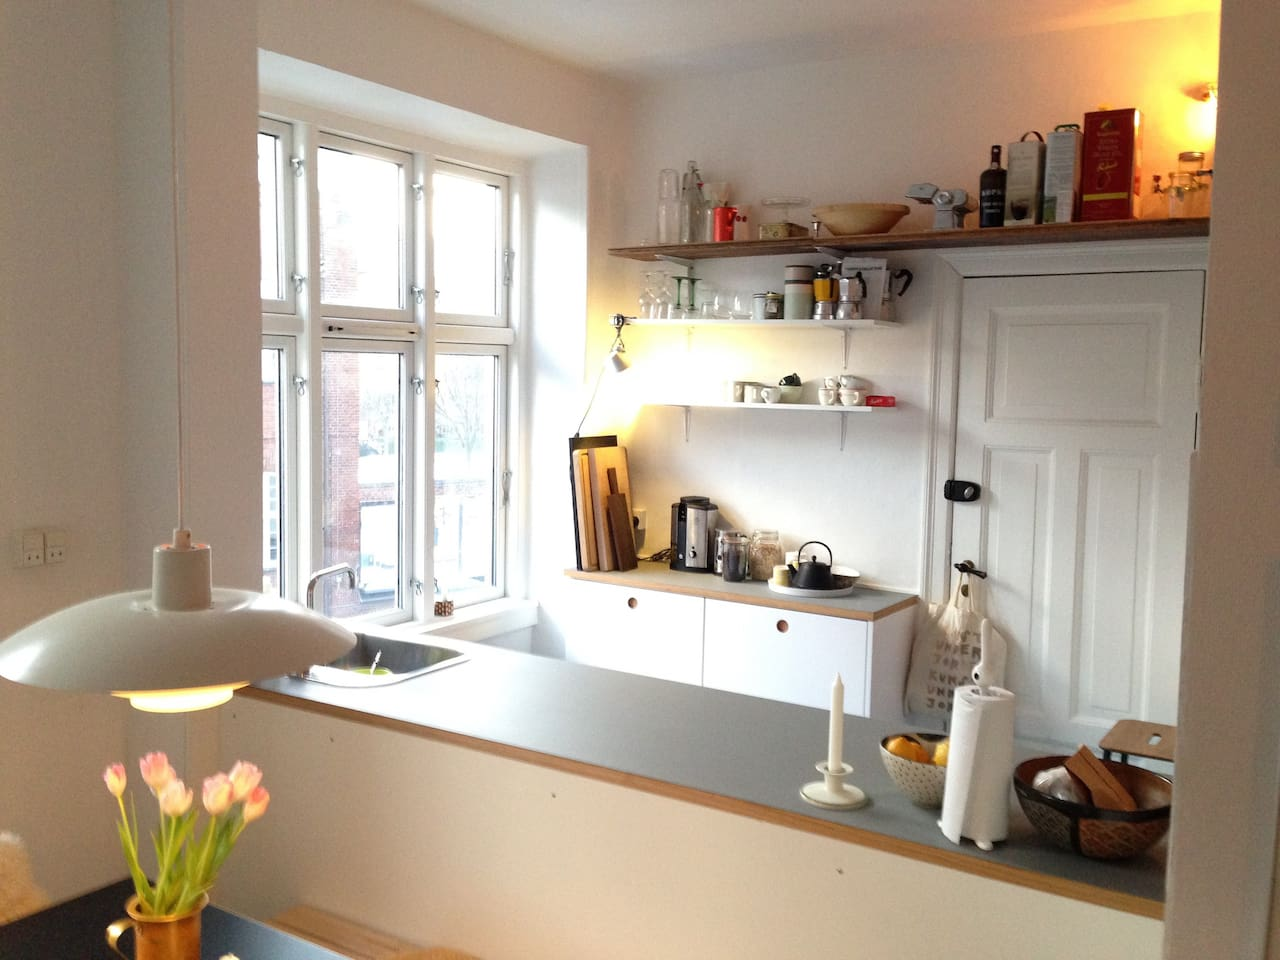 Beautiful open kitchen and dining room - newly refurbished with lots of natural light and scandinavian design and interior